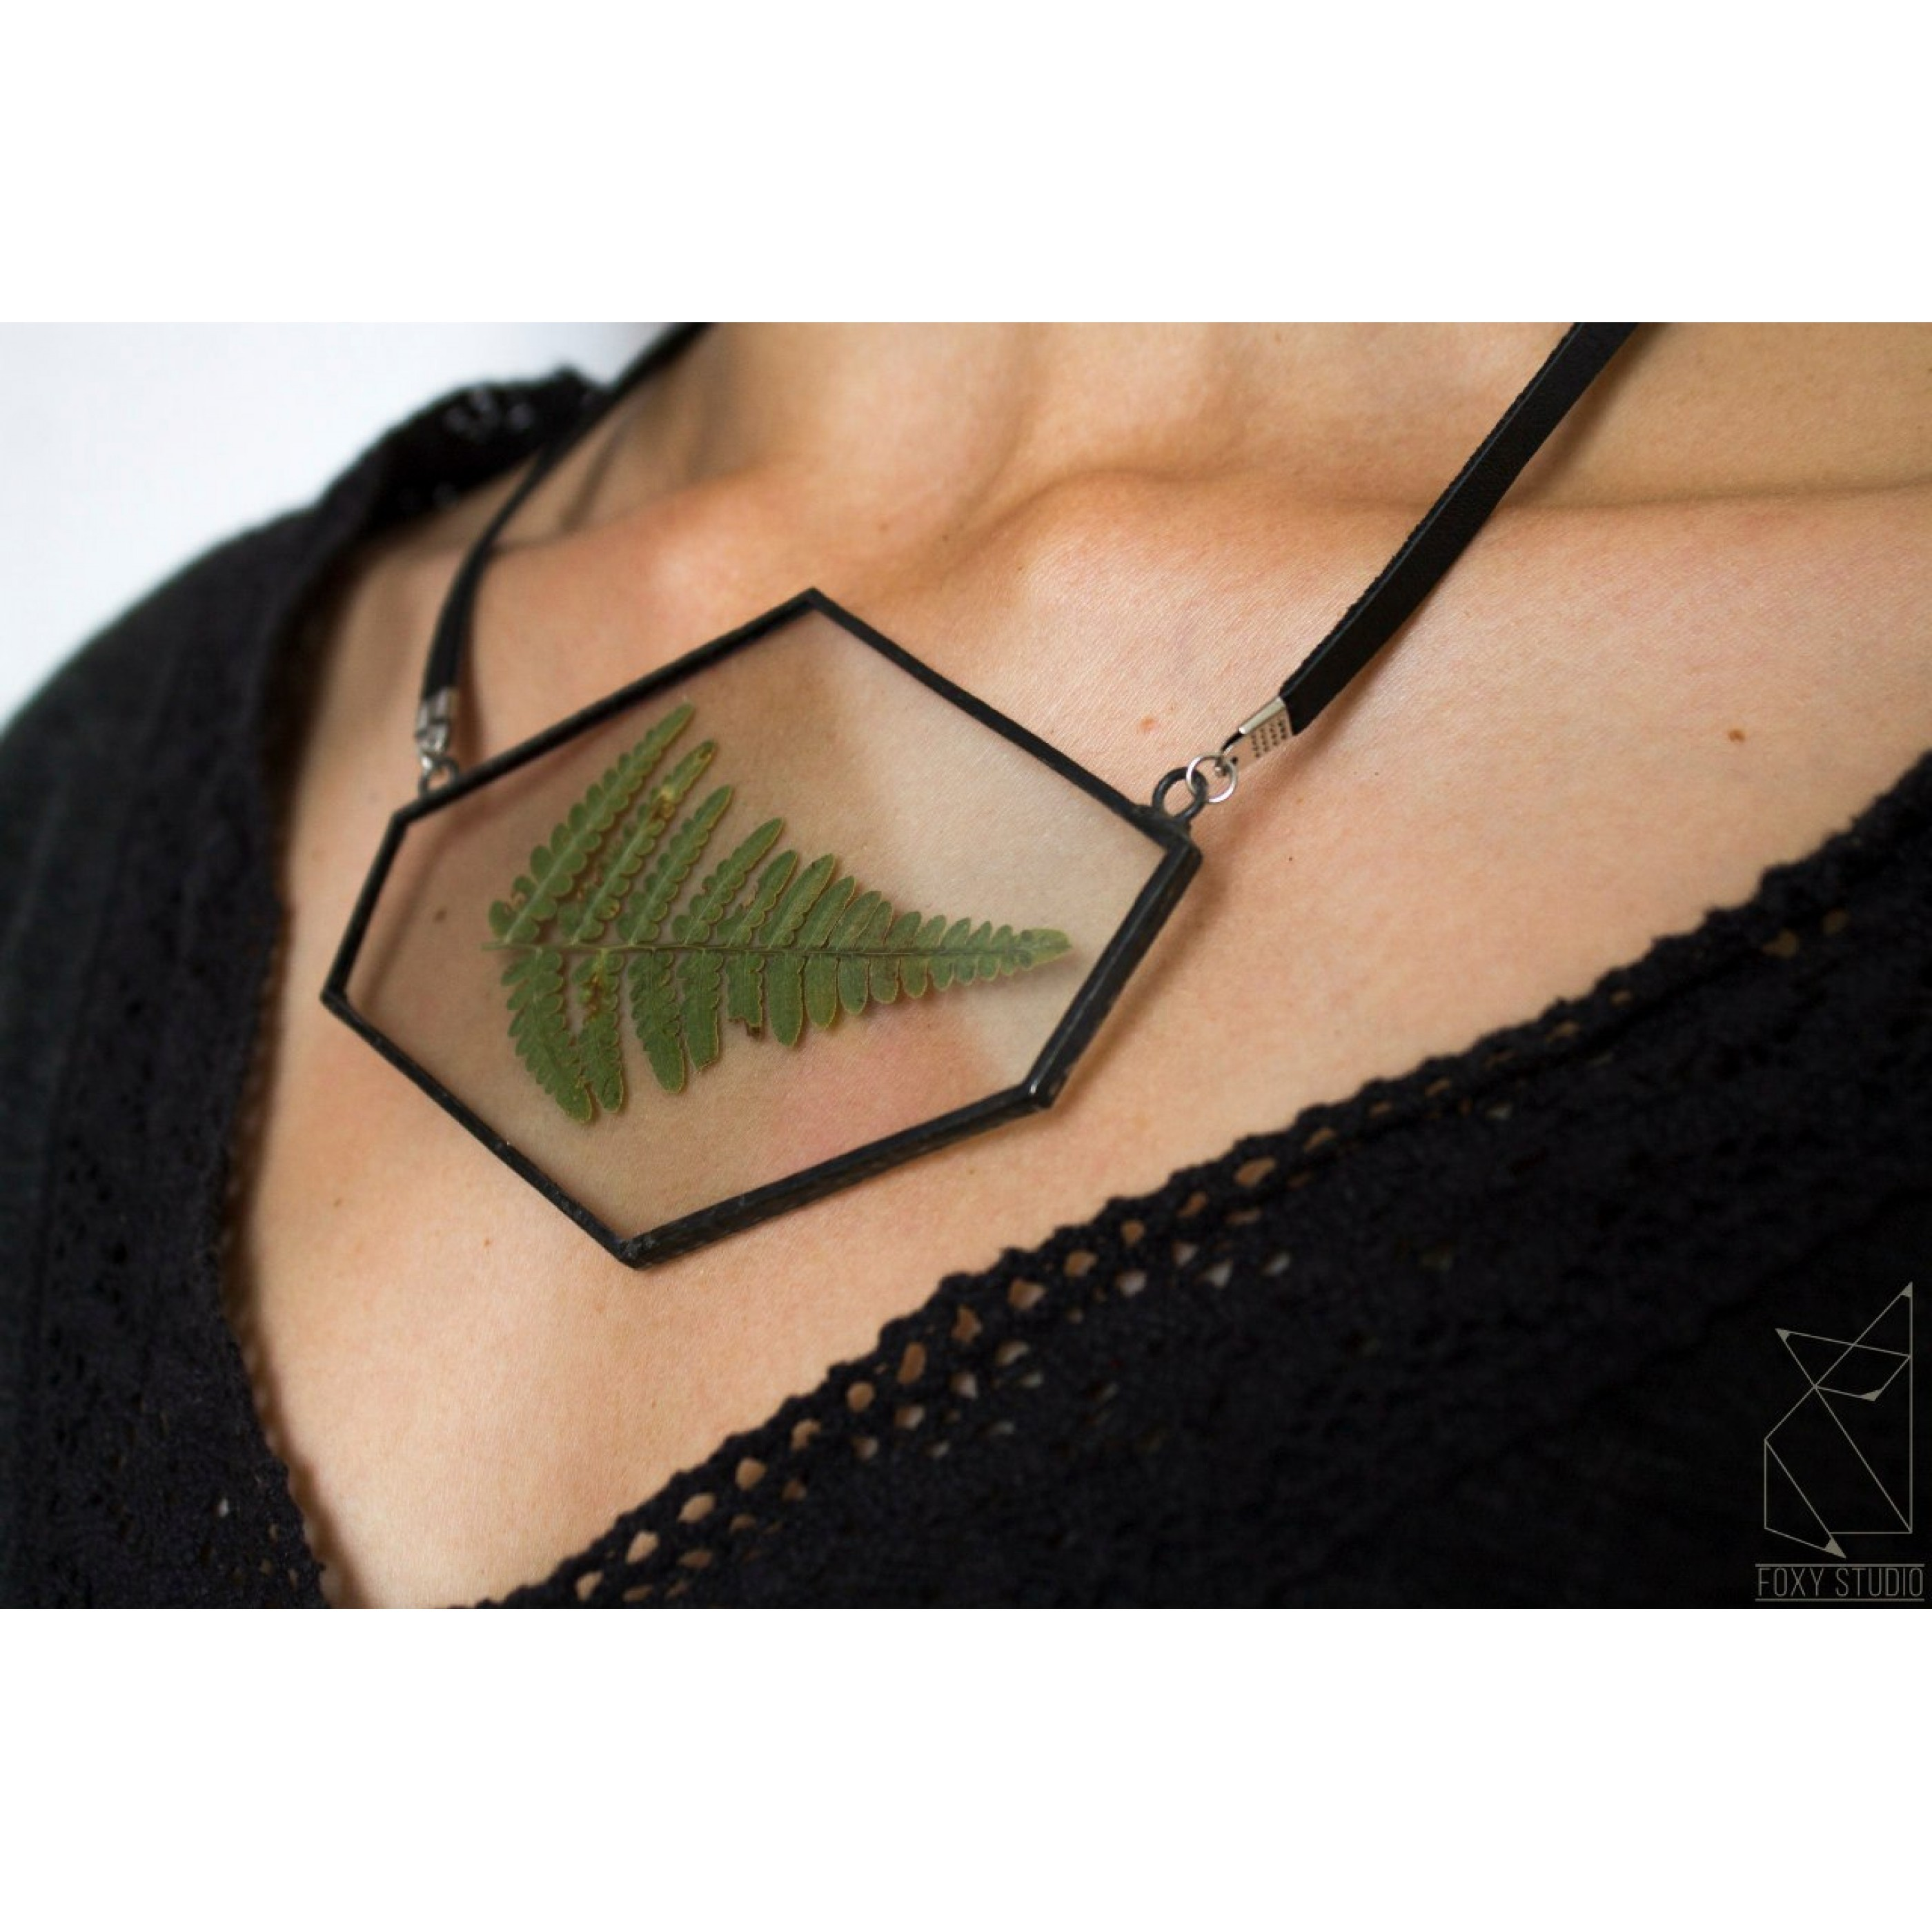 FOXY STUDIO Pendant with Leaf